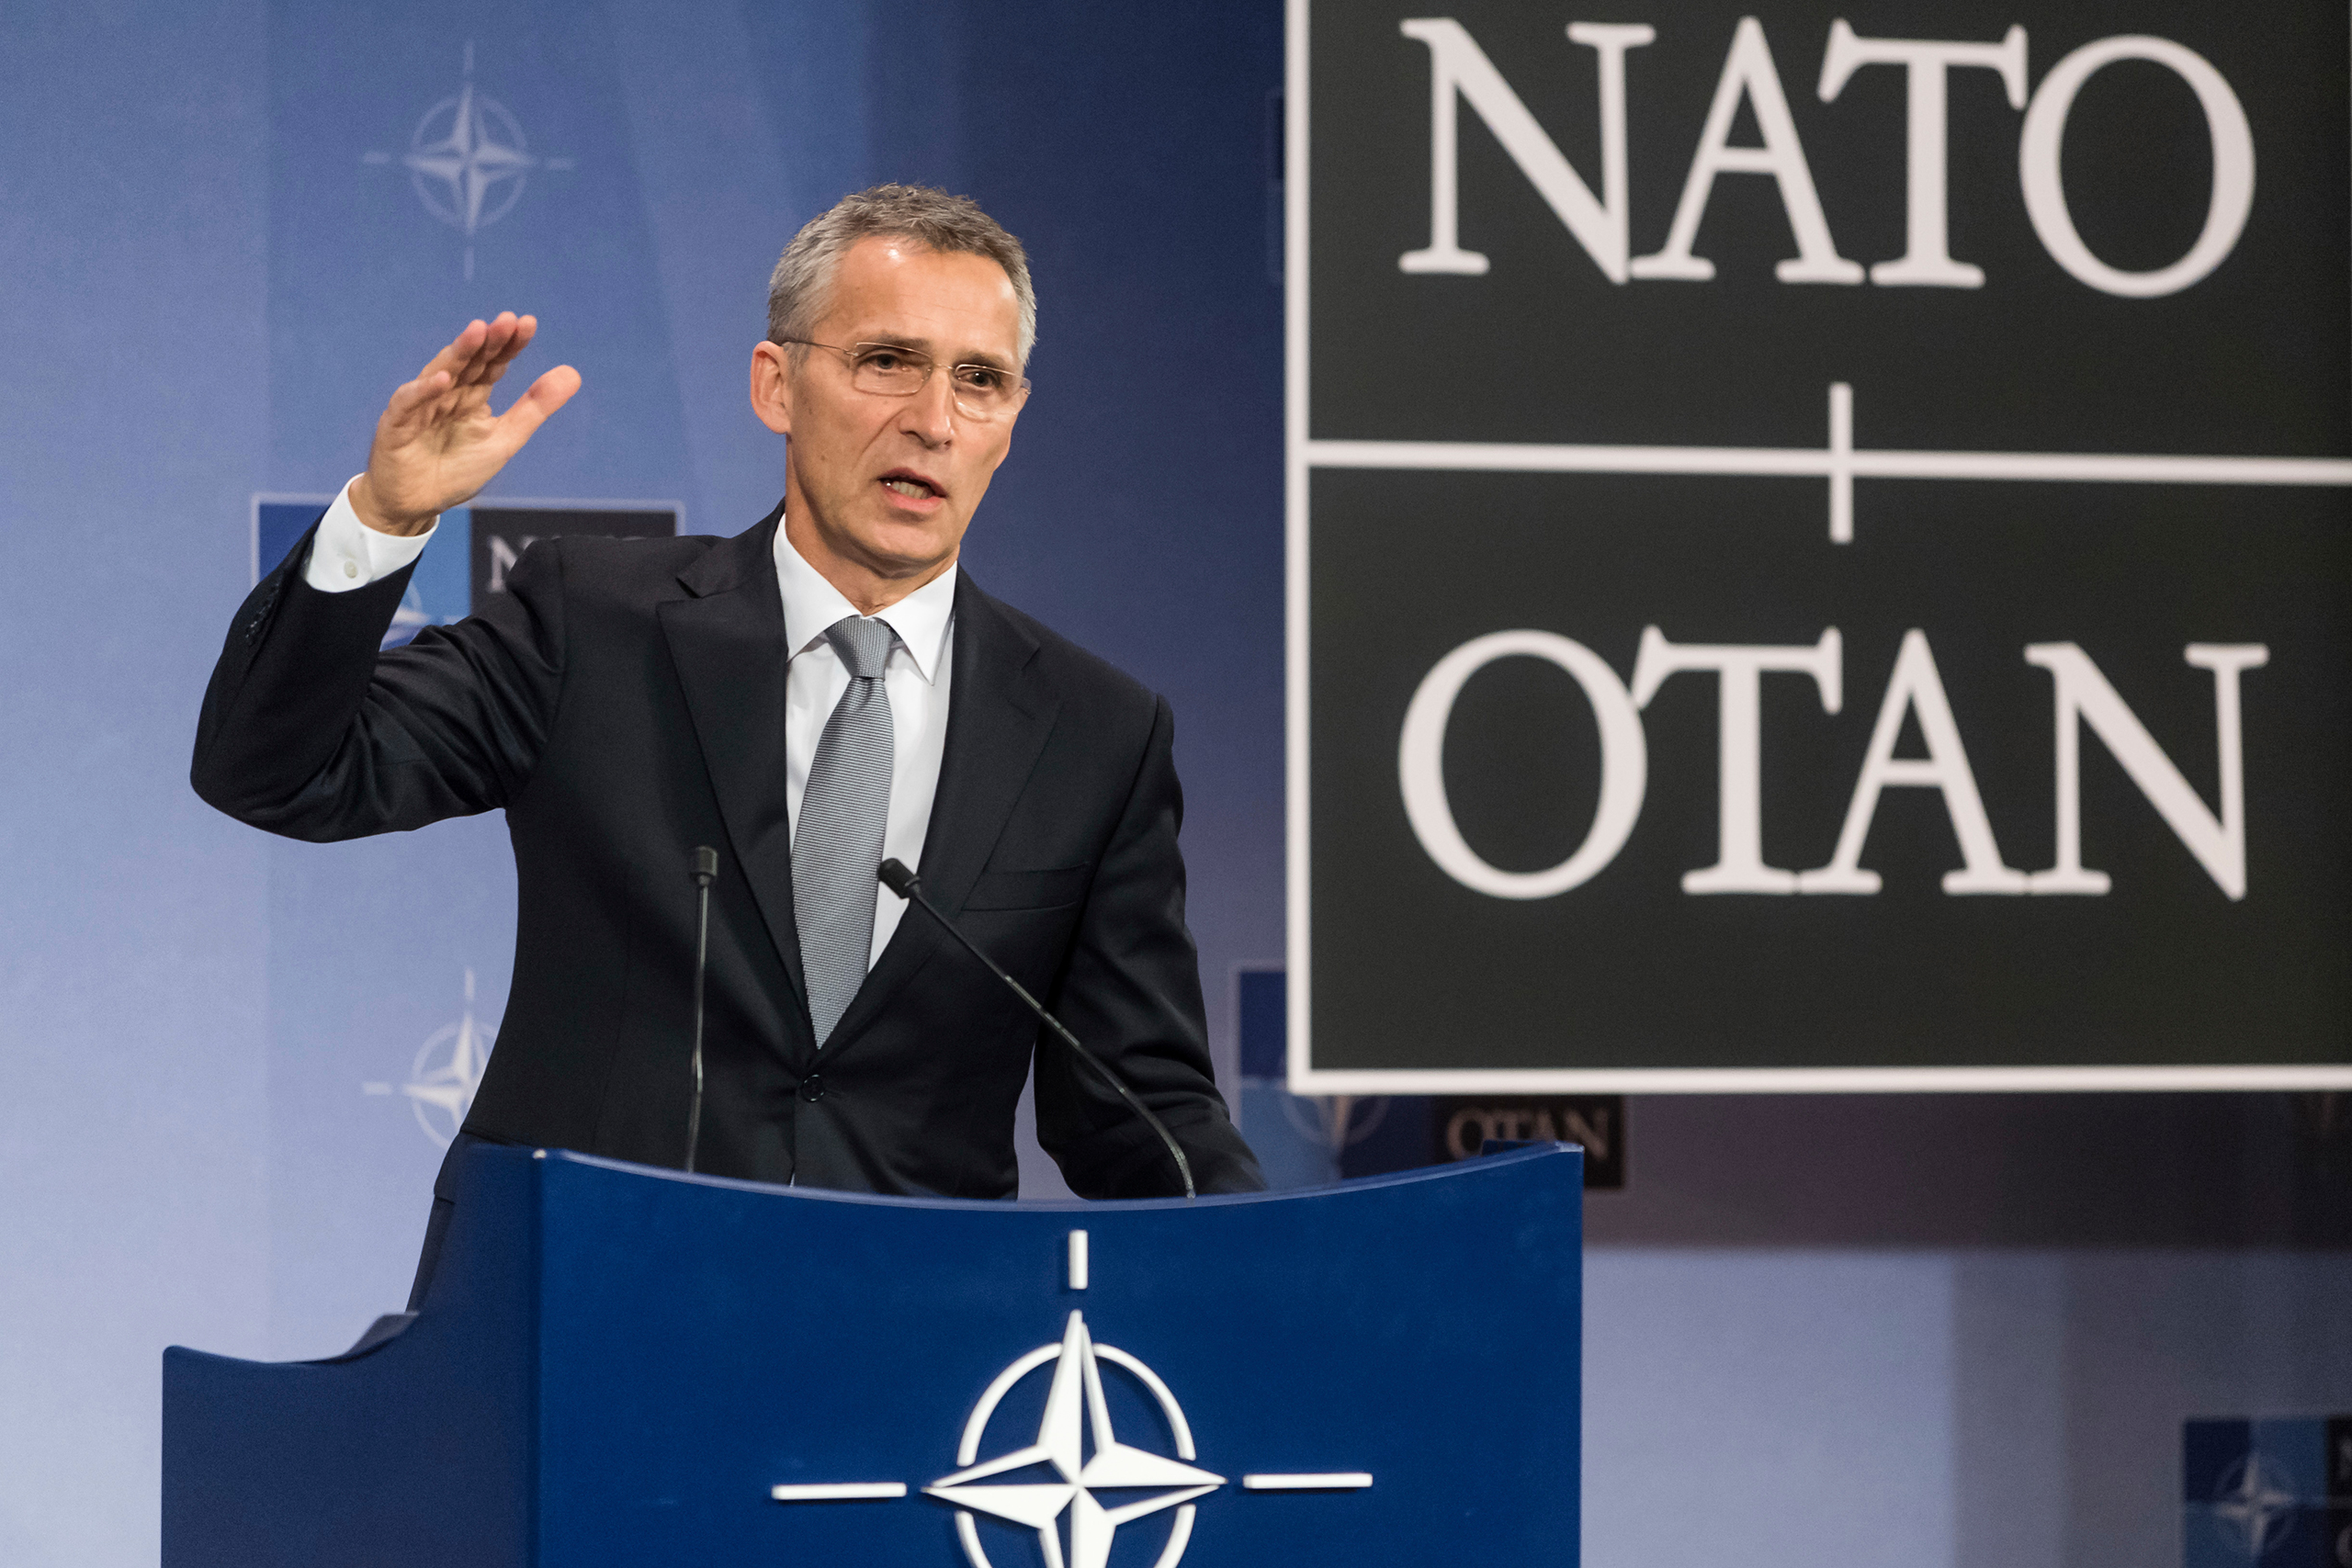 NATO Secretary-General Jens Stoltenberg addresses the media after a meeting of the North Atlantic Council in Defense Ministers session at NATO headquarters in Brussels on Oct. 27, 2016. The session included tense relations with Russia, how to help Middle East nations combat extremism and cooperation between the military alliance and the E.U.